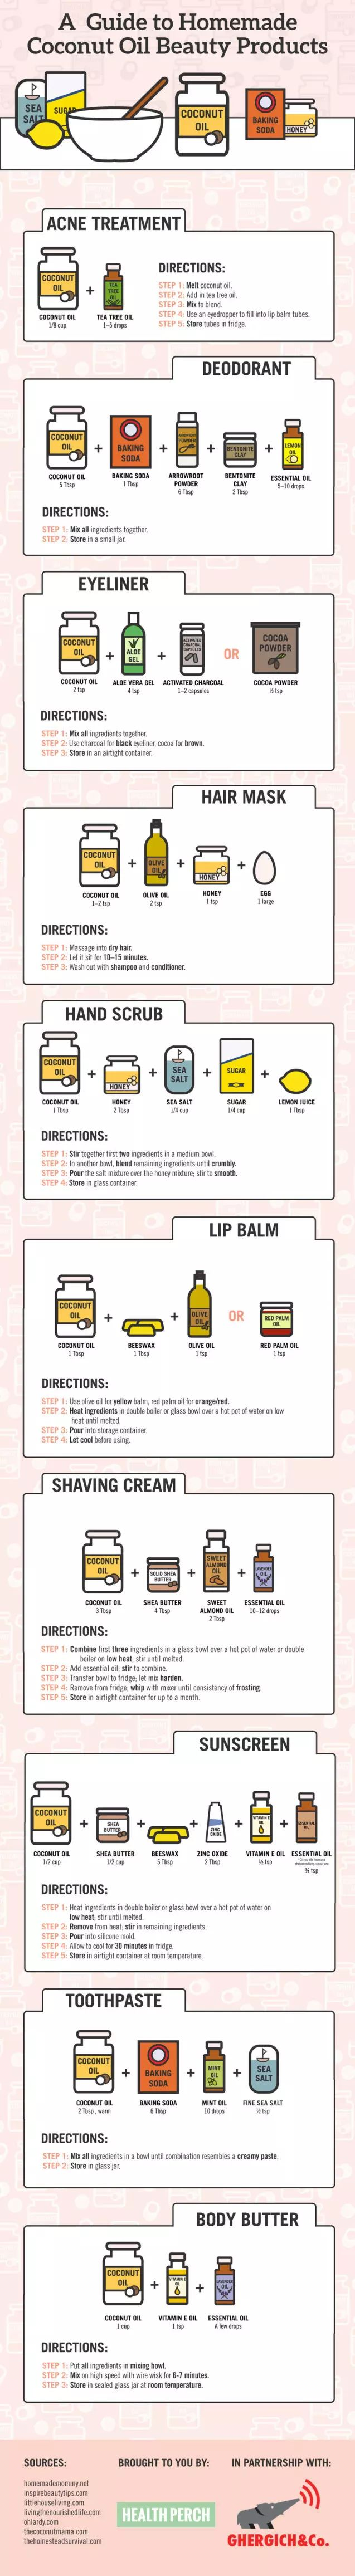 A Guide To DIY Coconut Oil Beauty Products